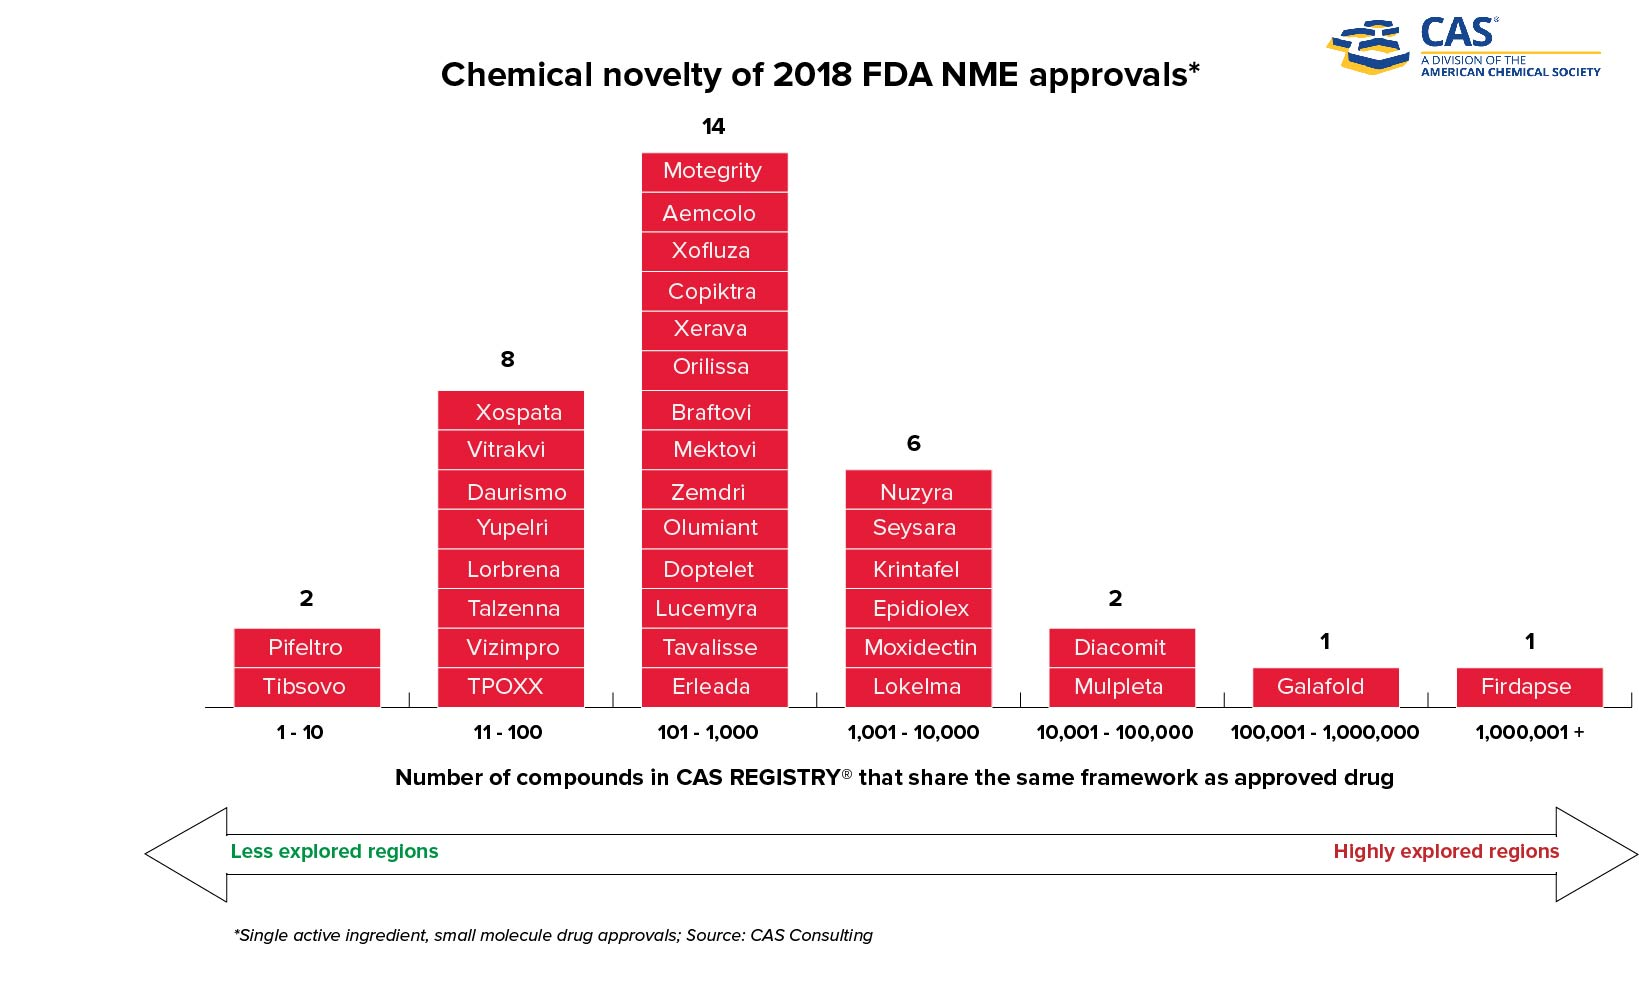 Chemical novelty of 2018 FDA approvals